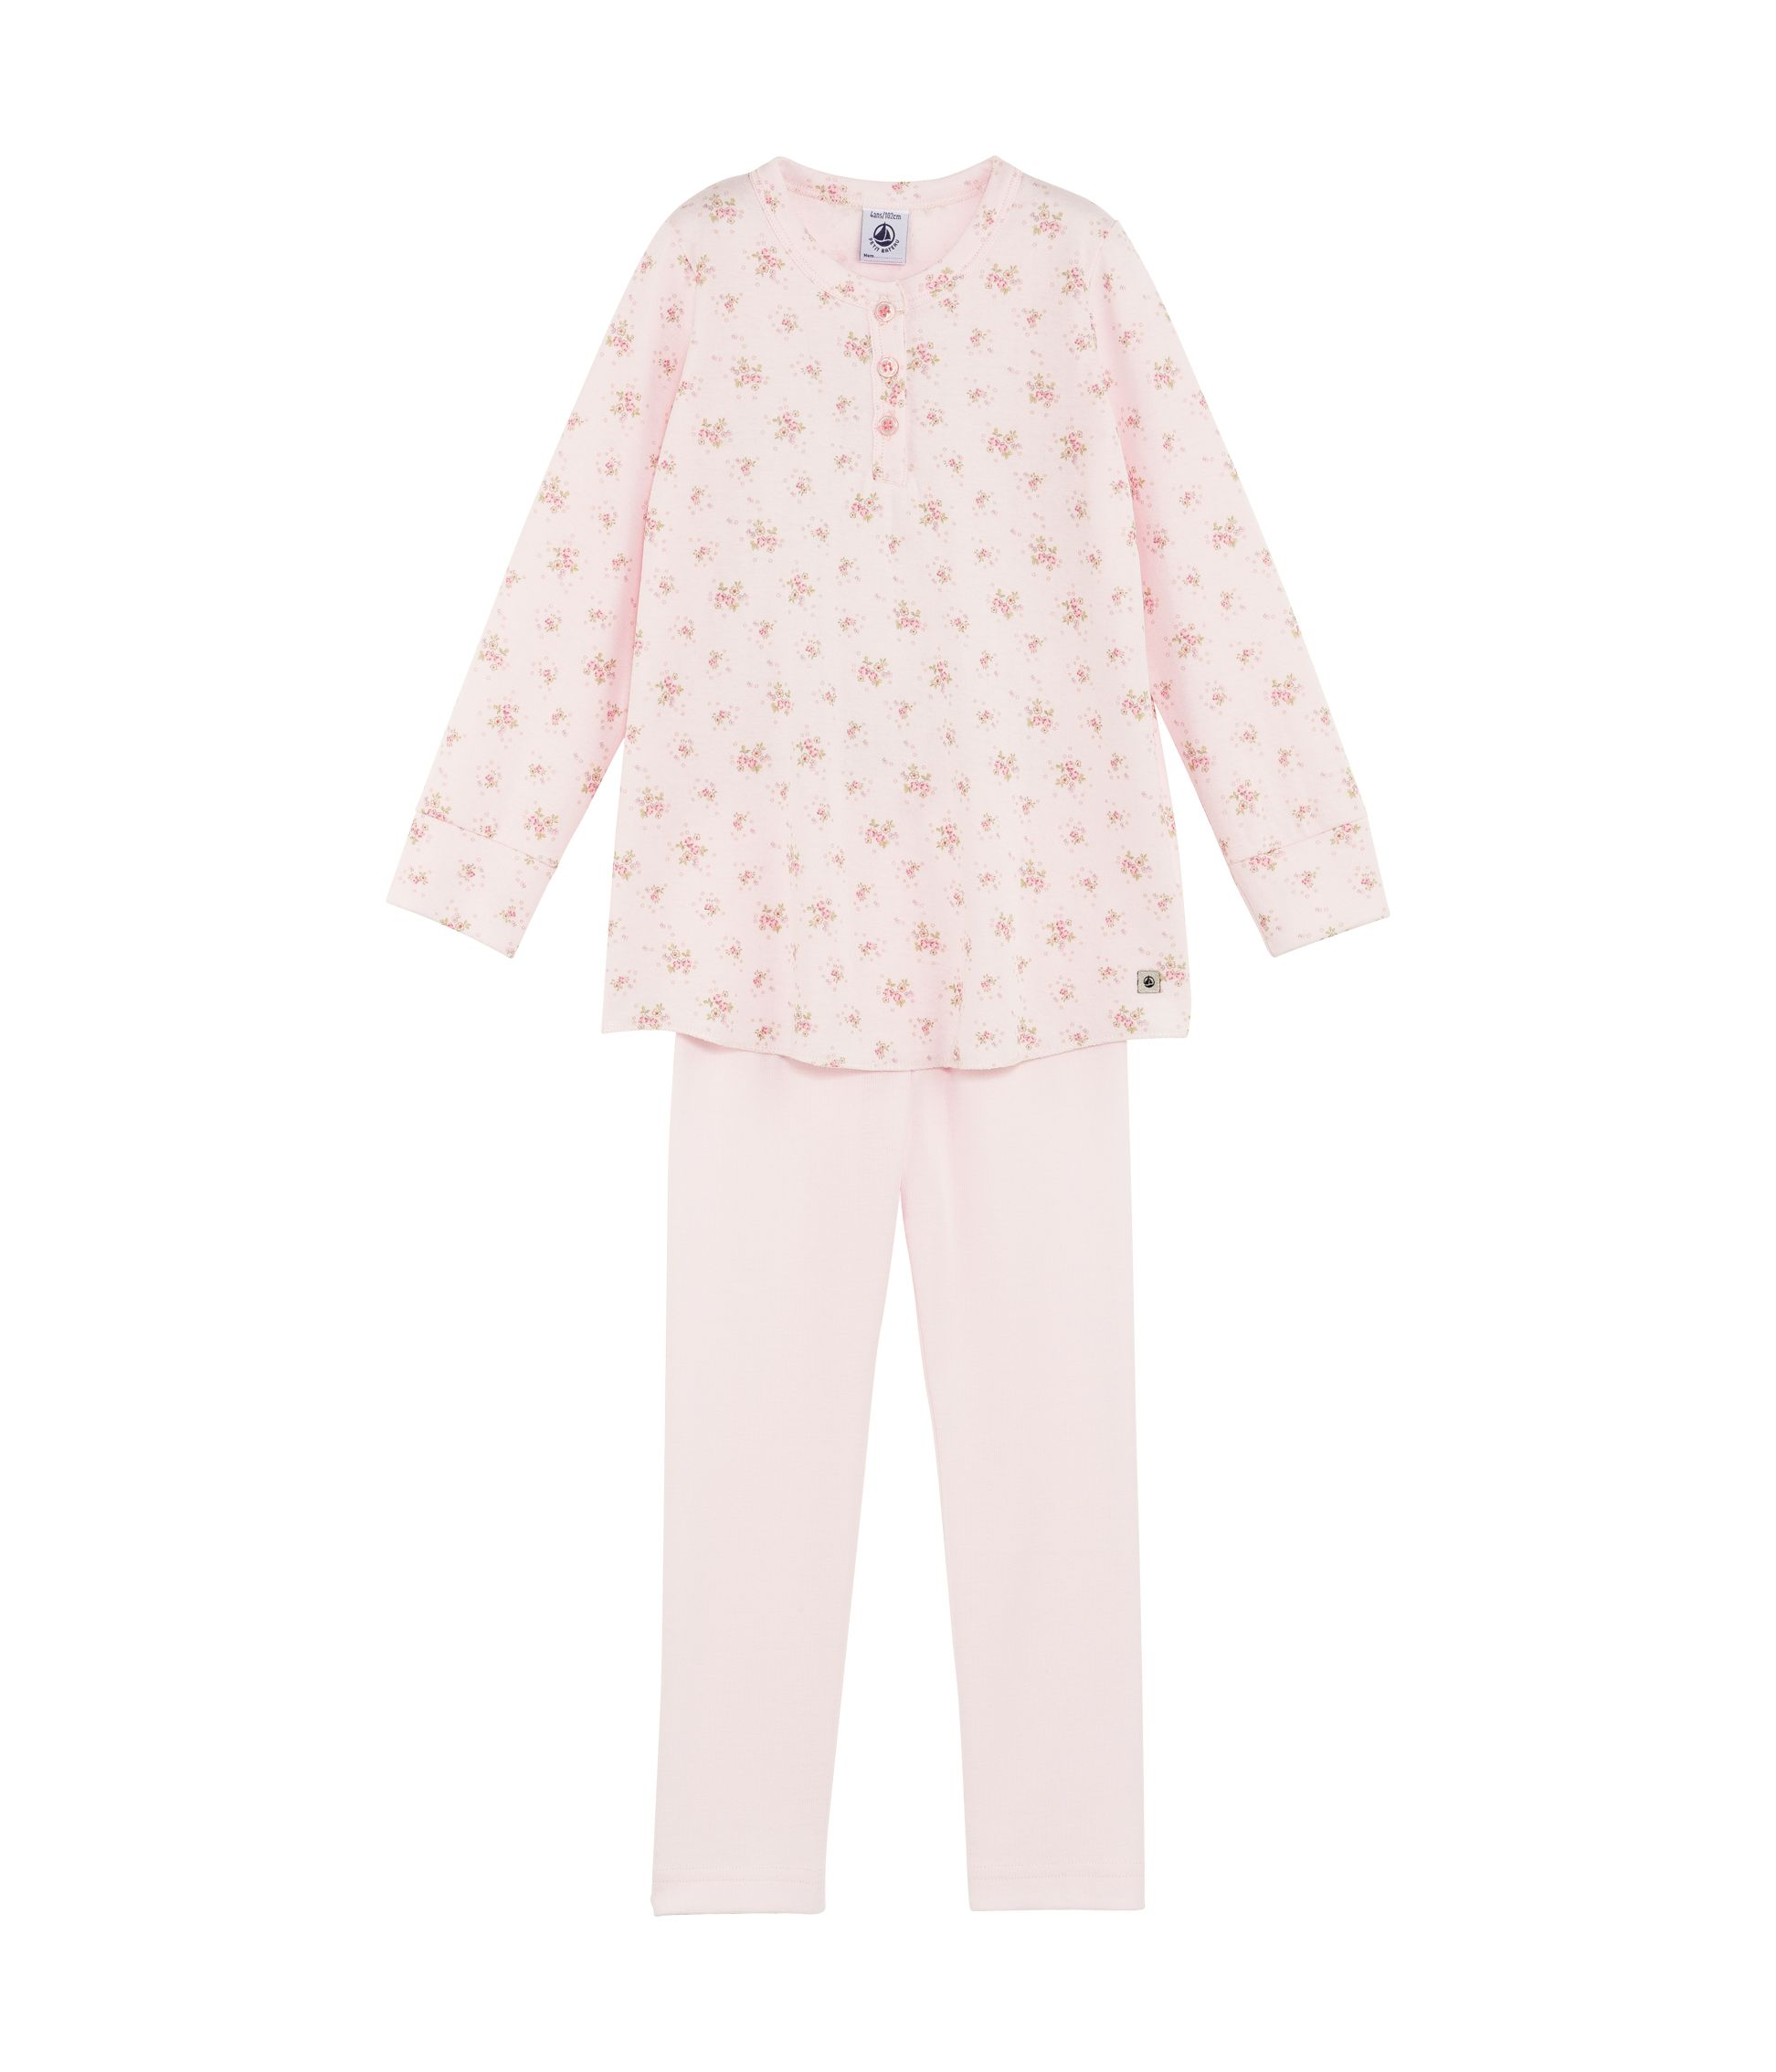 Girls soft jersey pyjamas